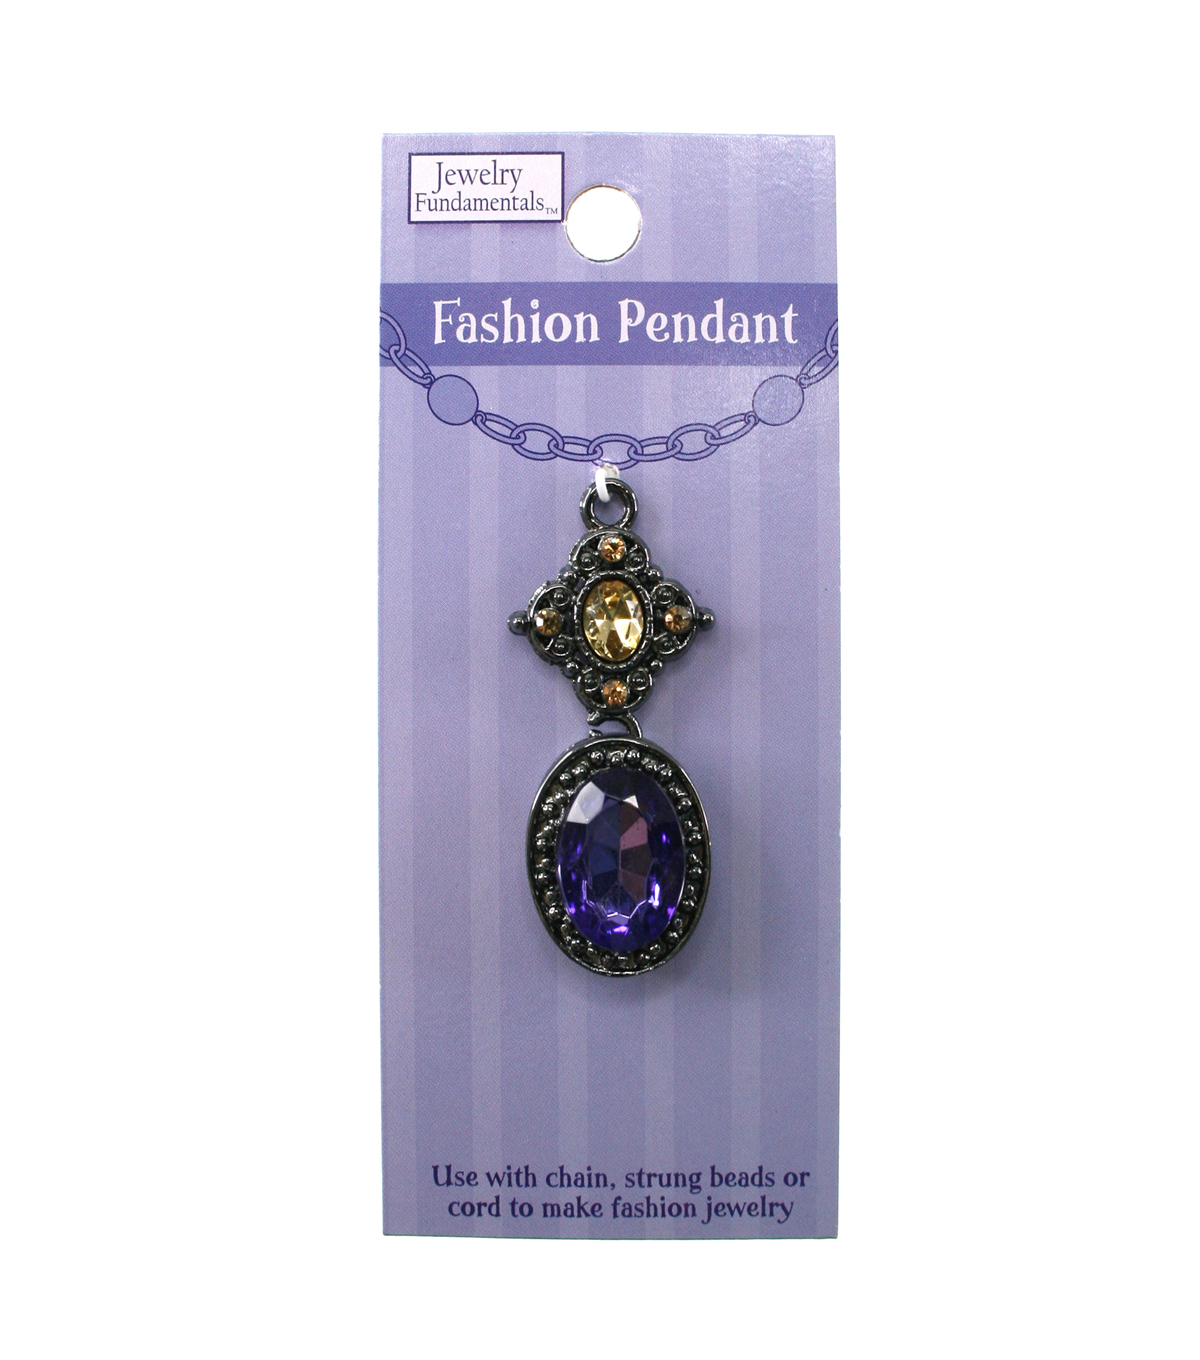 Jewelry Fundamentals Fashion Pendant - Purple Fashion Focal